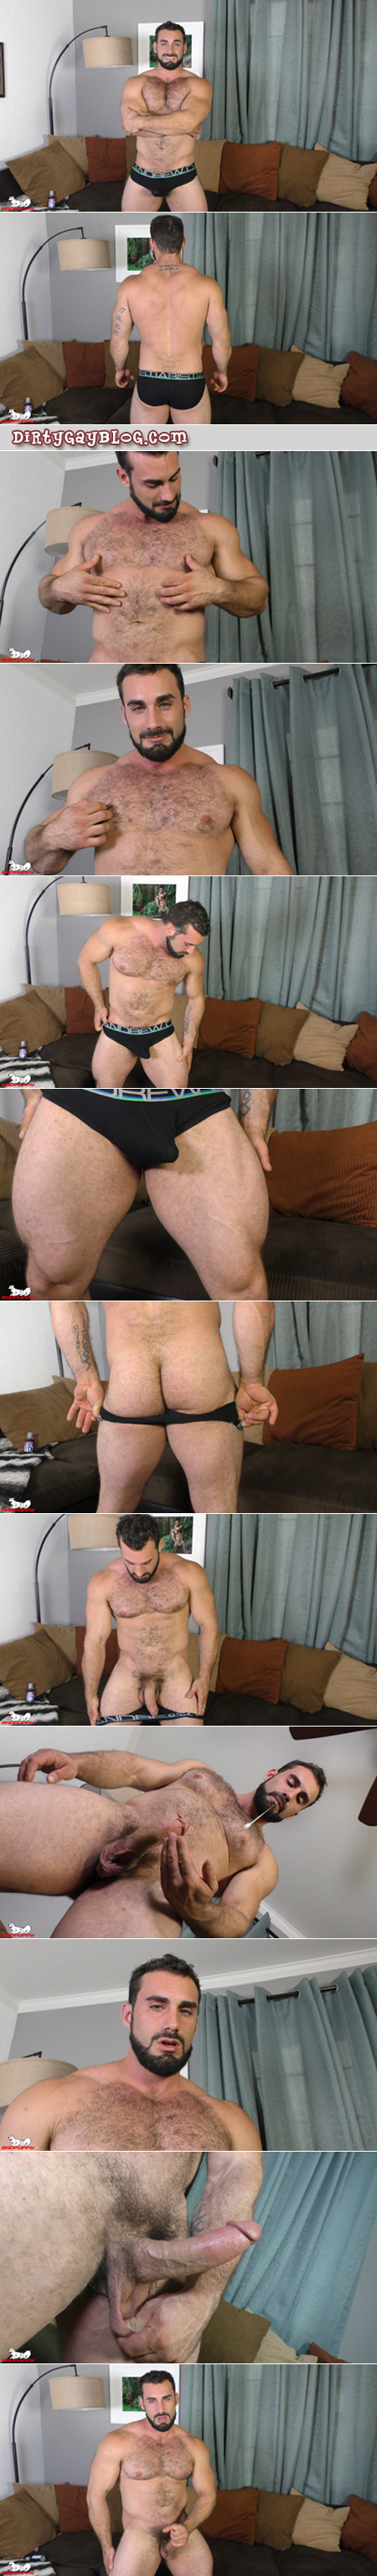 Hairy muscle hunk Jaxton Wheeler in black briefs with an erection.